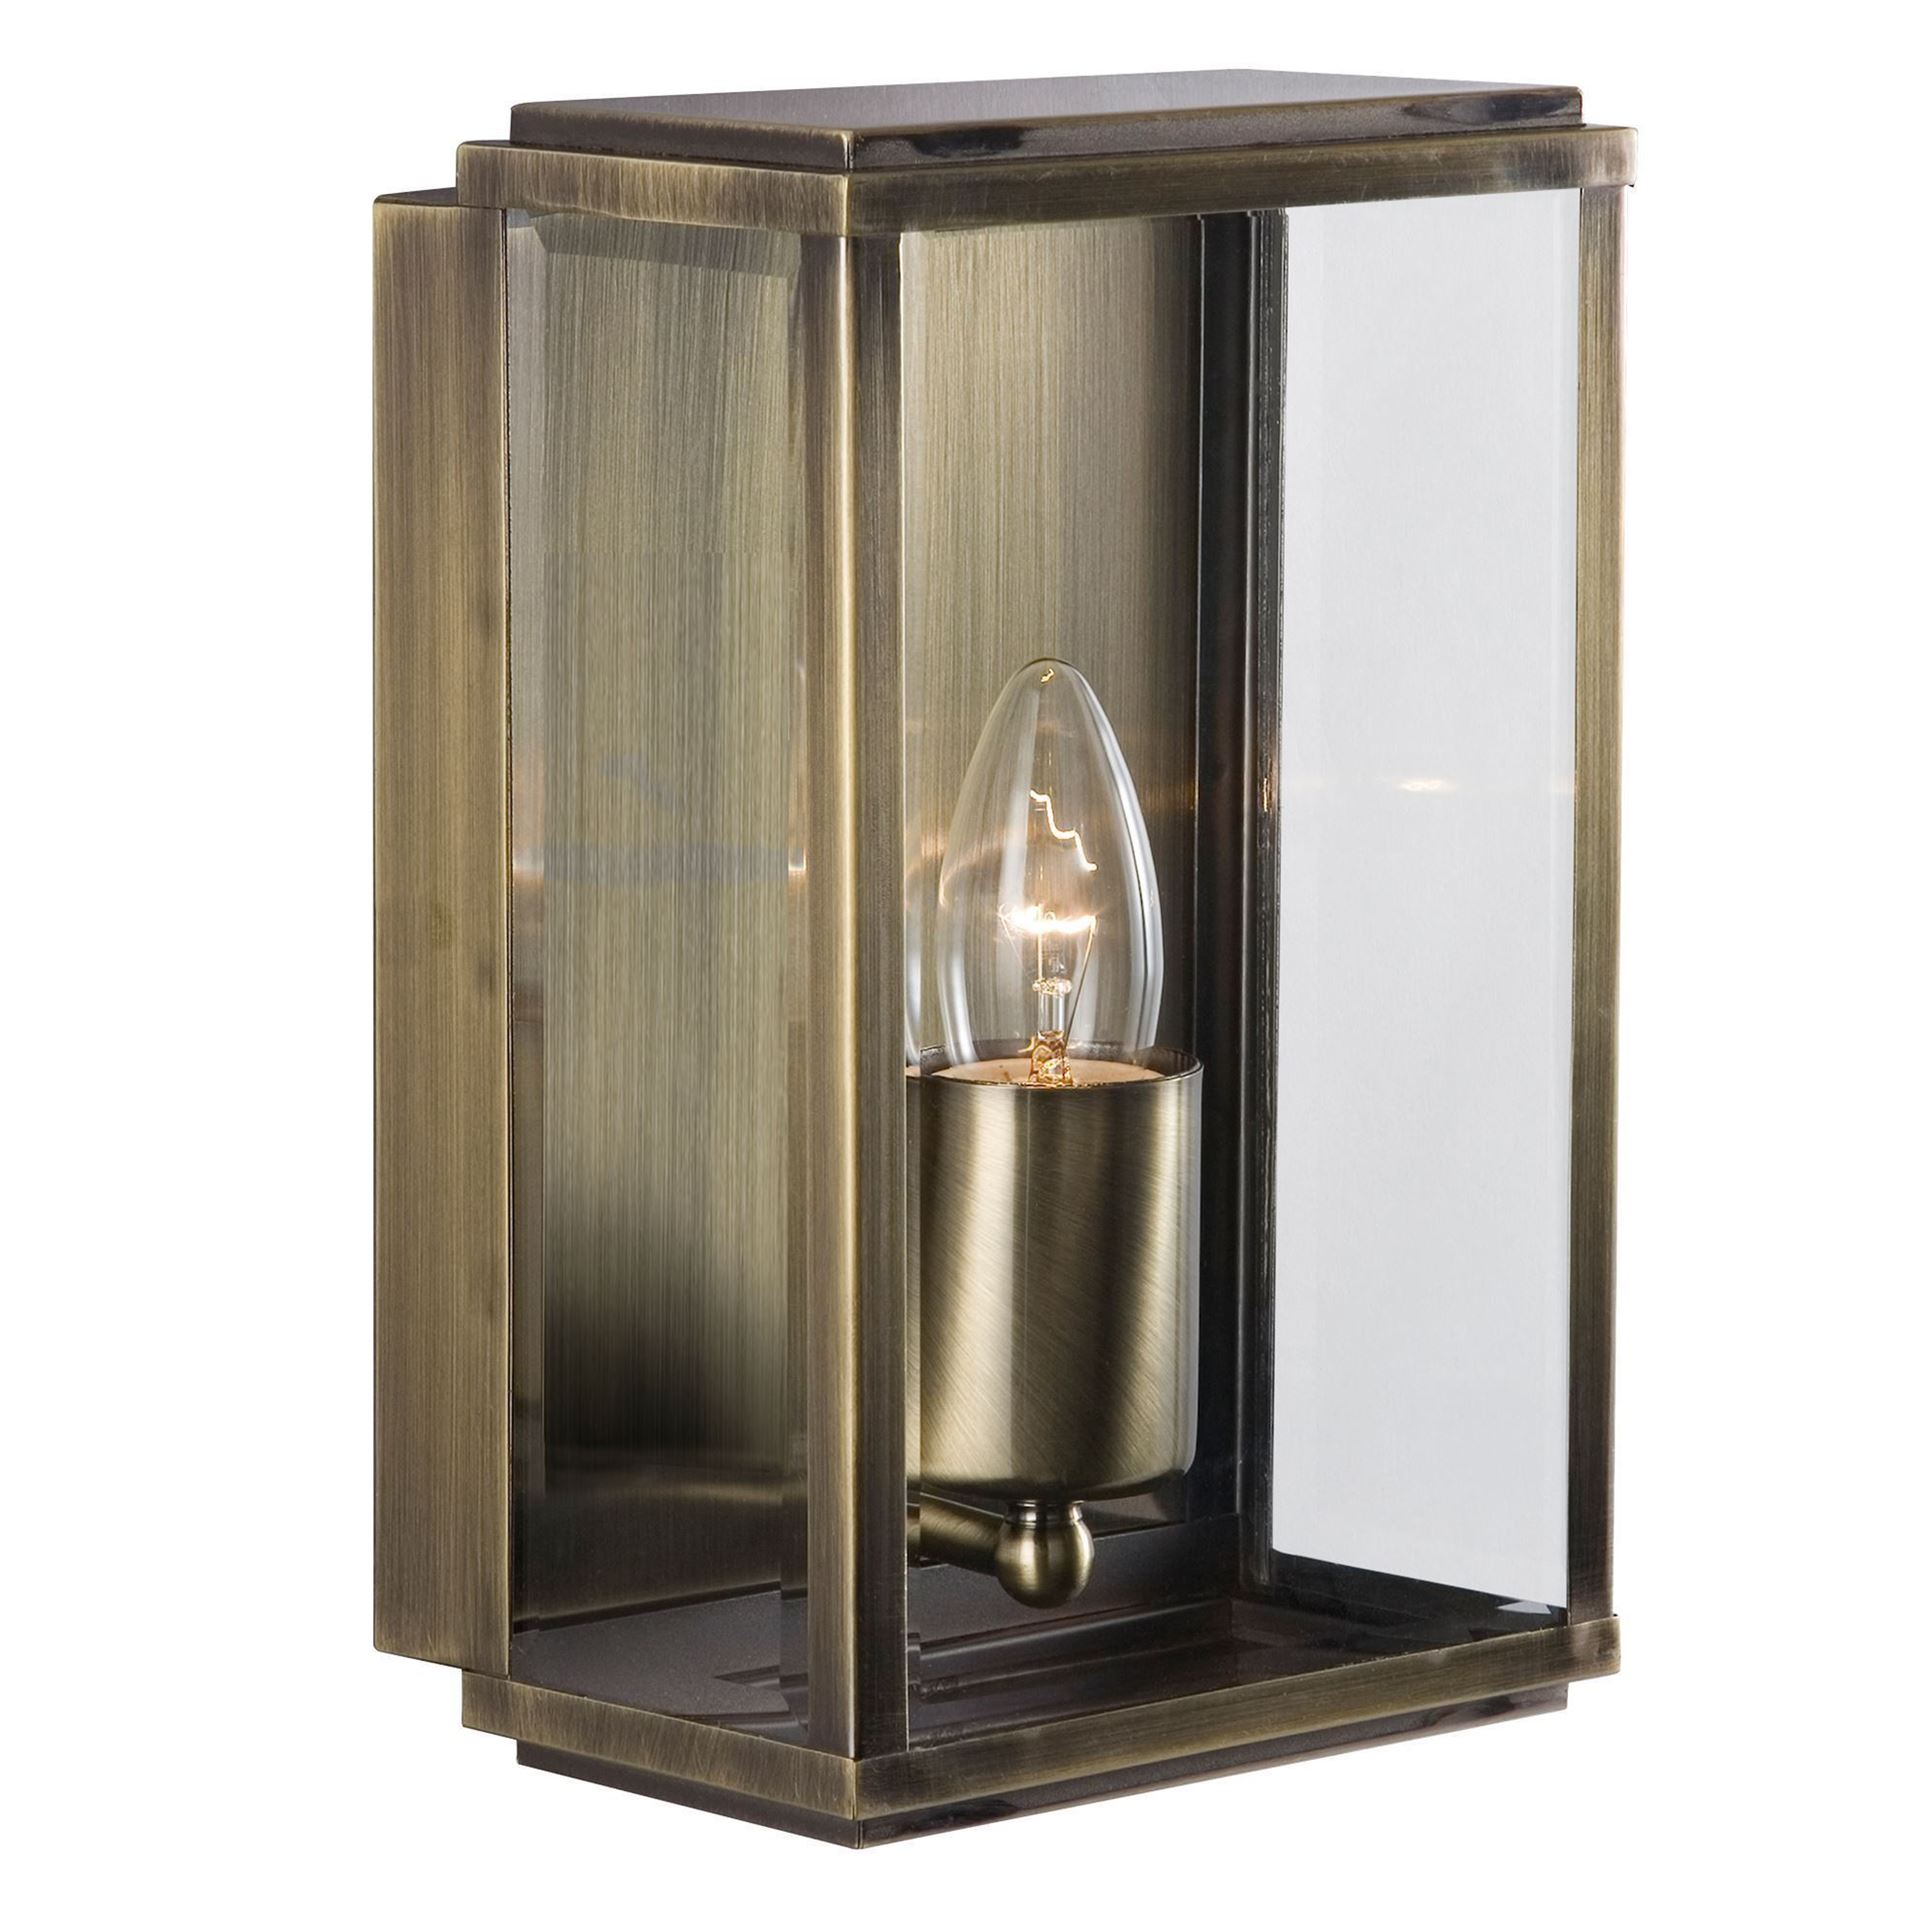 ANTIQUE BRASS BOX IP44 RECTANGULAR OUTDOOR WALL LIGHT WITH BEVELLED GLASS 8204AB